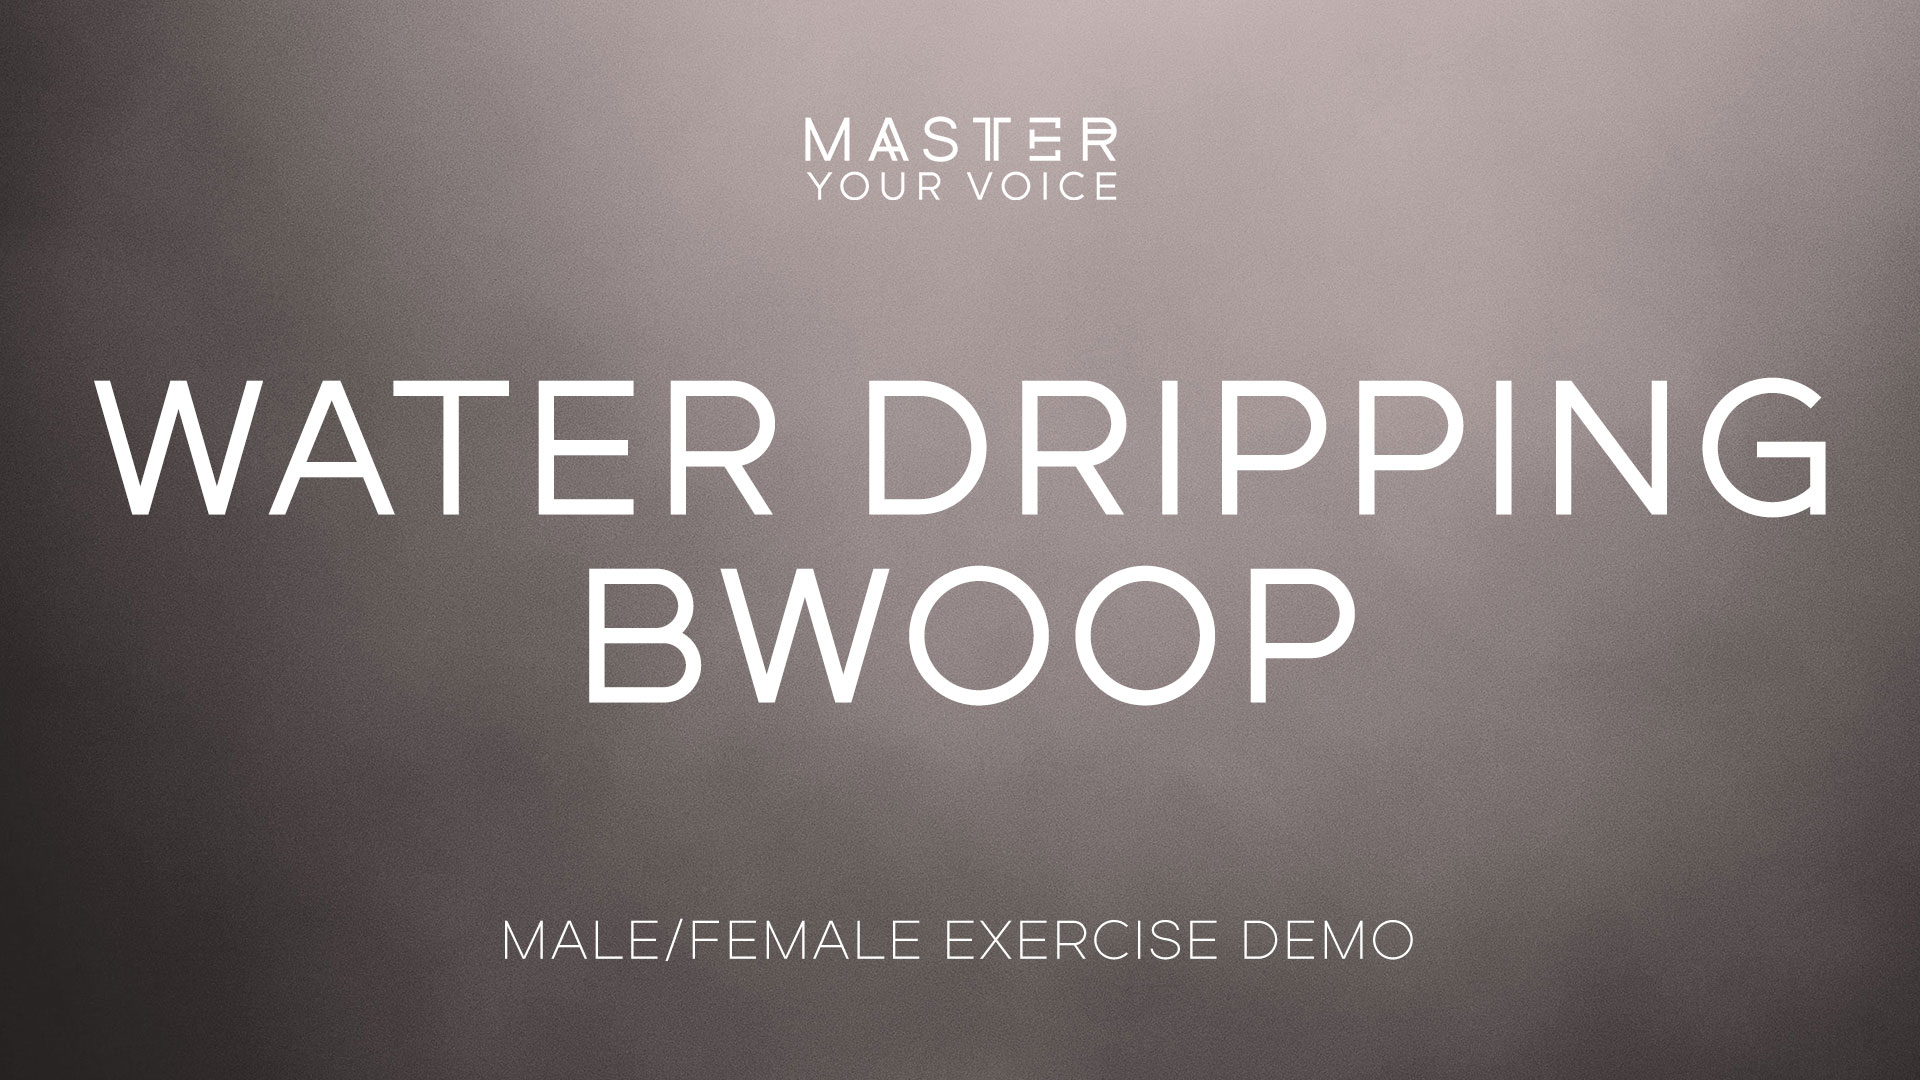 Water Dripping Bwoop Exercise Demo